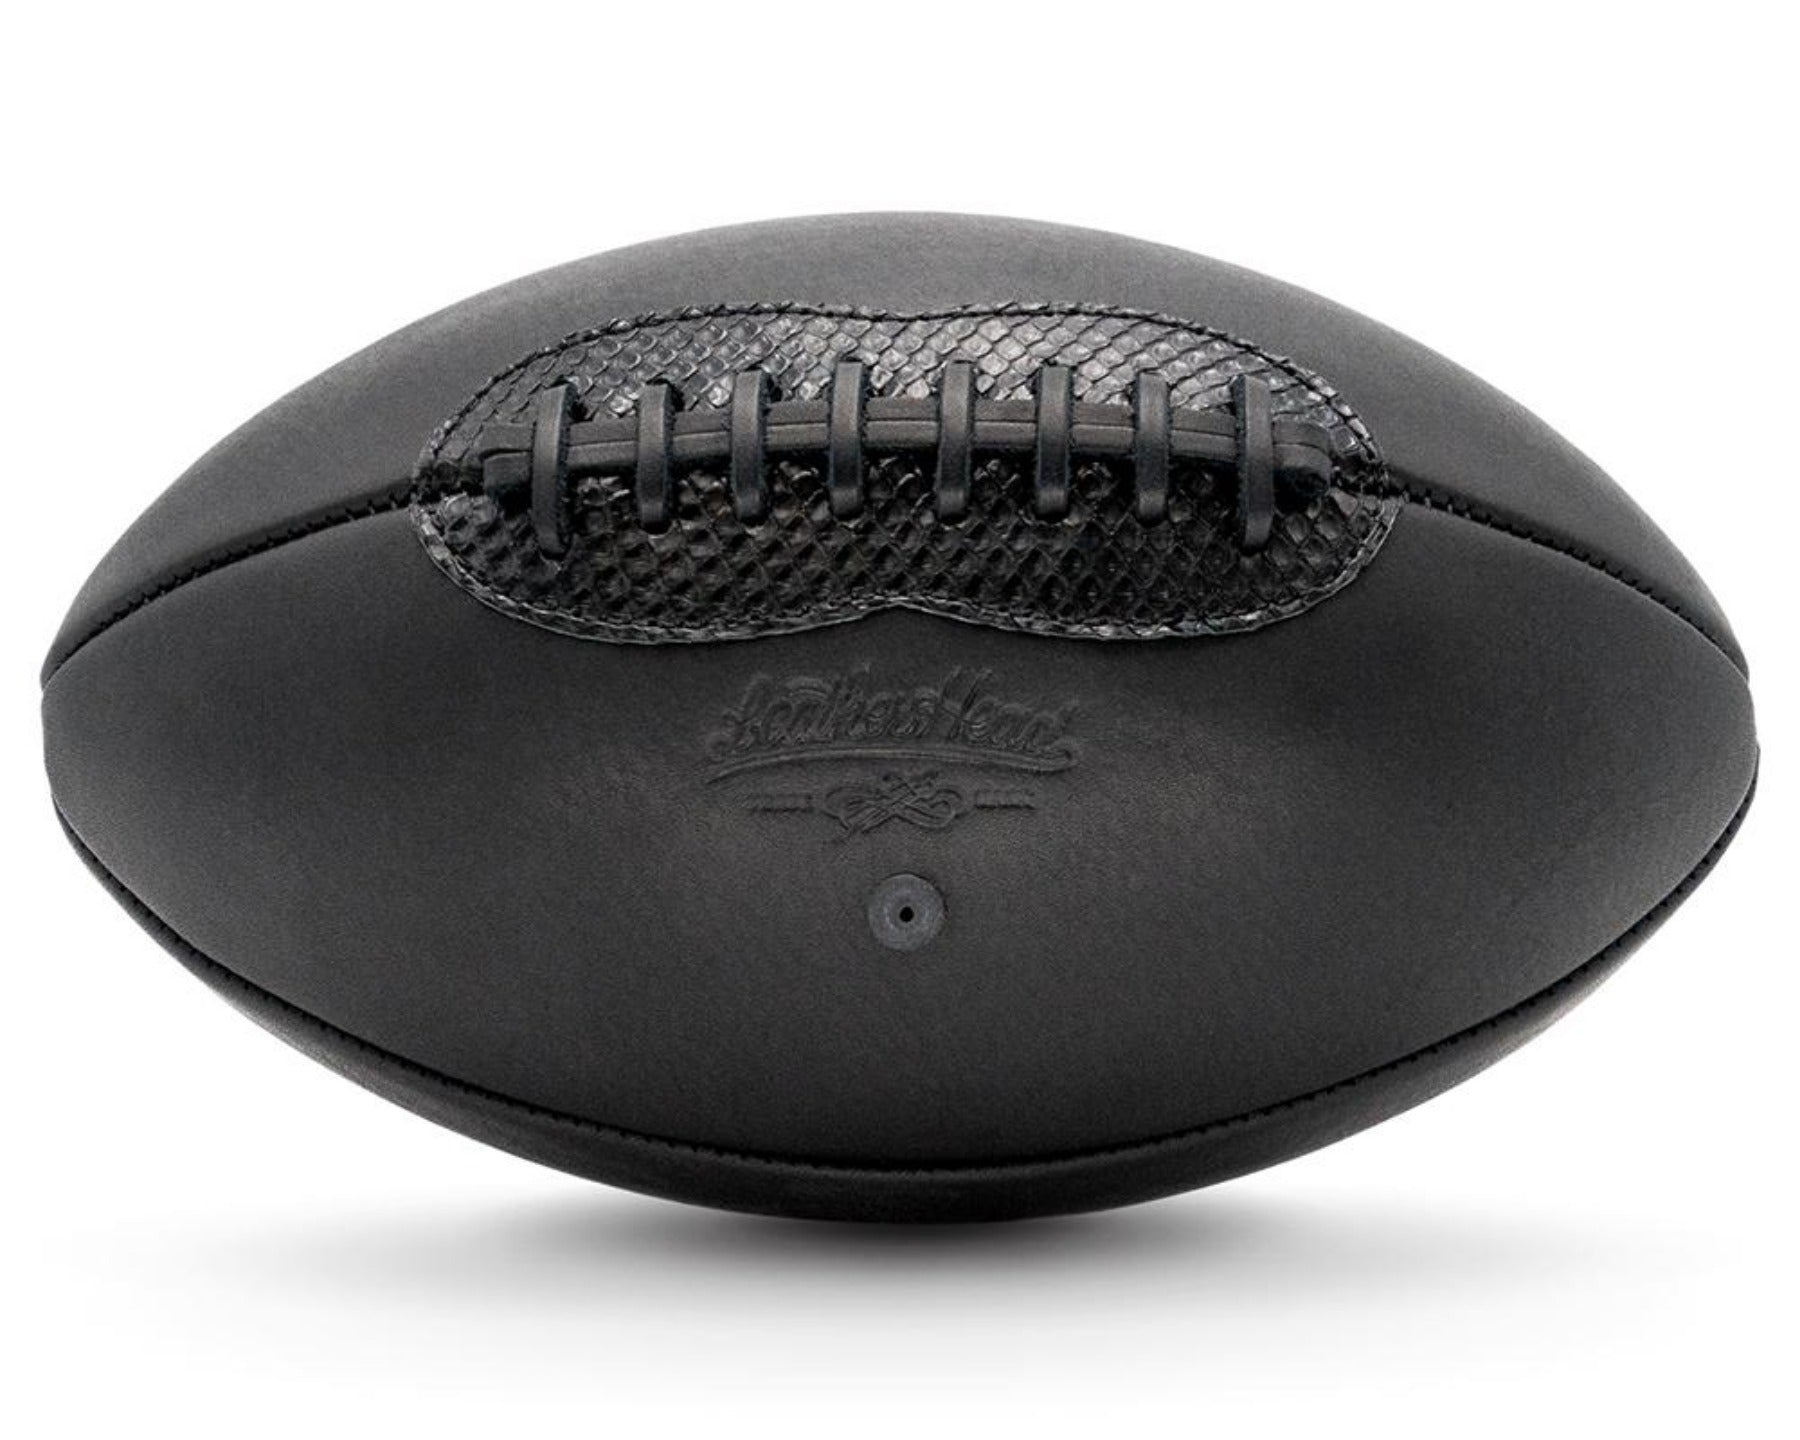 Leather Head Sports Onyx Handmade Football with Python Accent